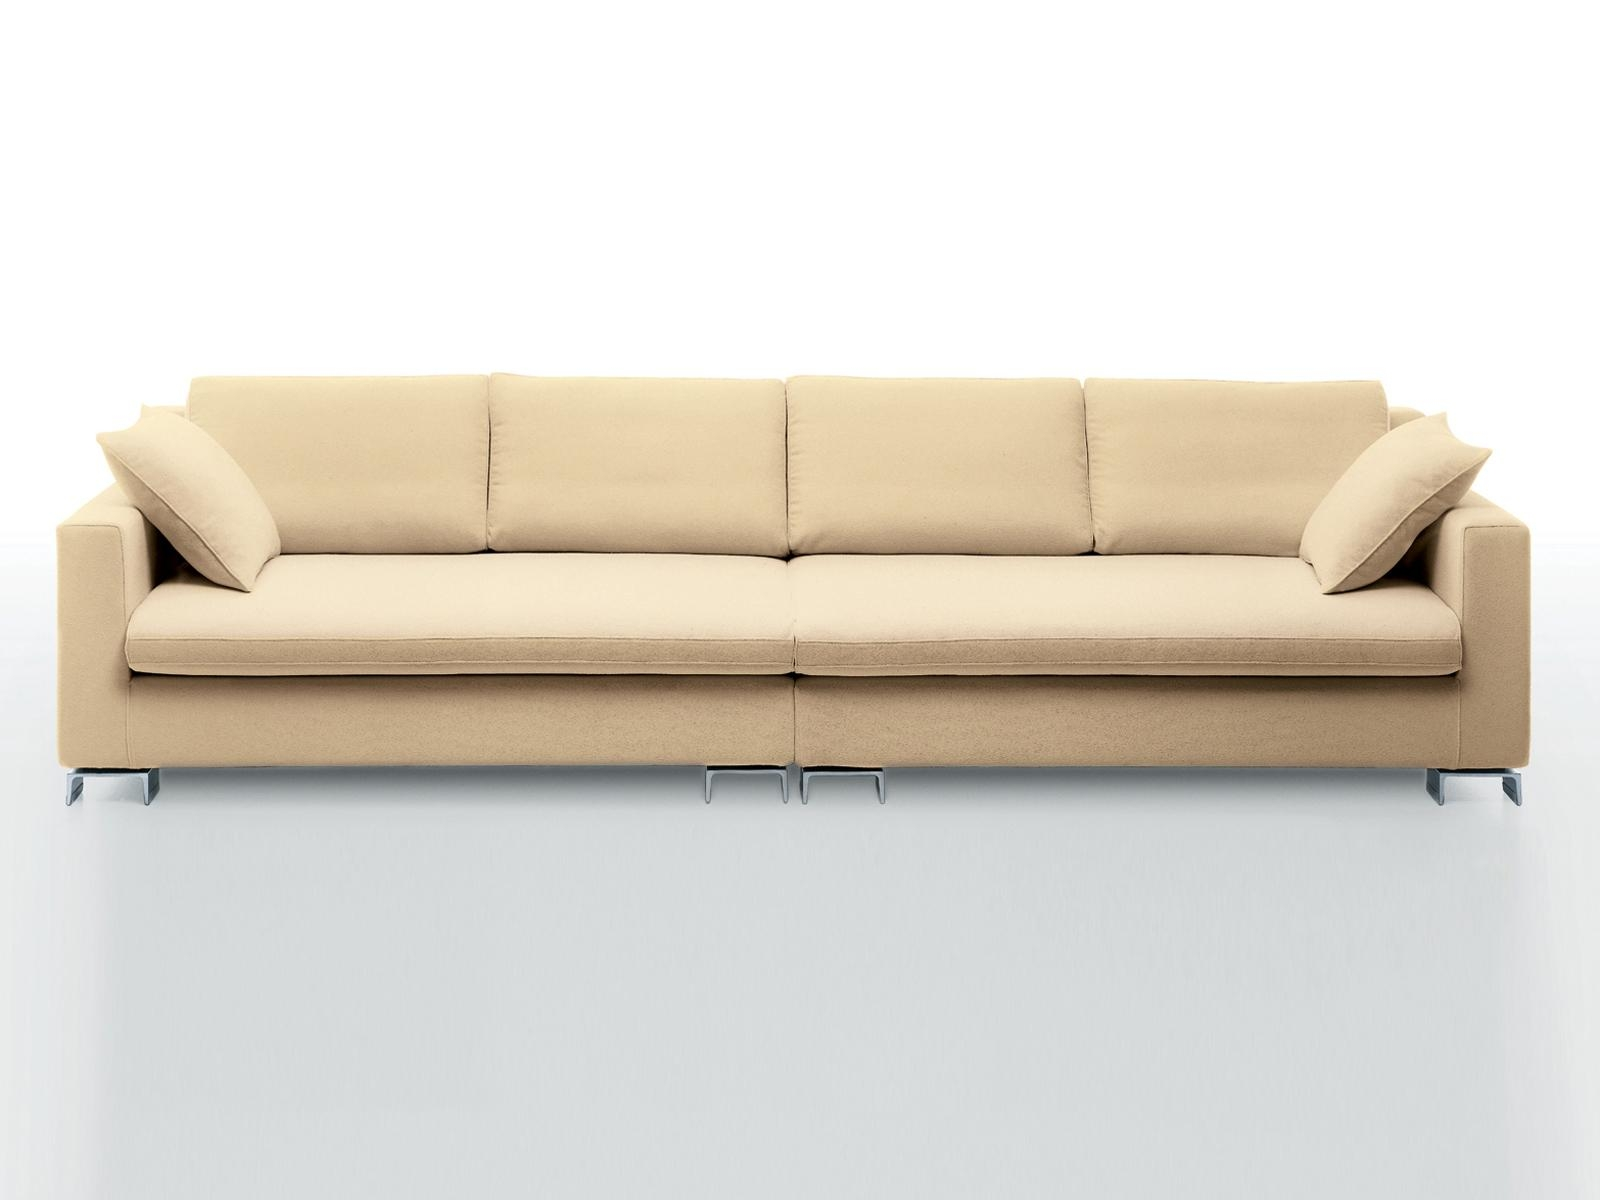 Bridge | 4 Seater Sofai 4 Mariani Design Luca Scacchetti Regarding Four Seater Sofas (View 8 of 20)